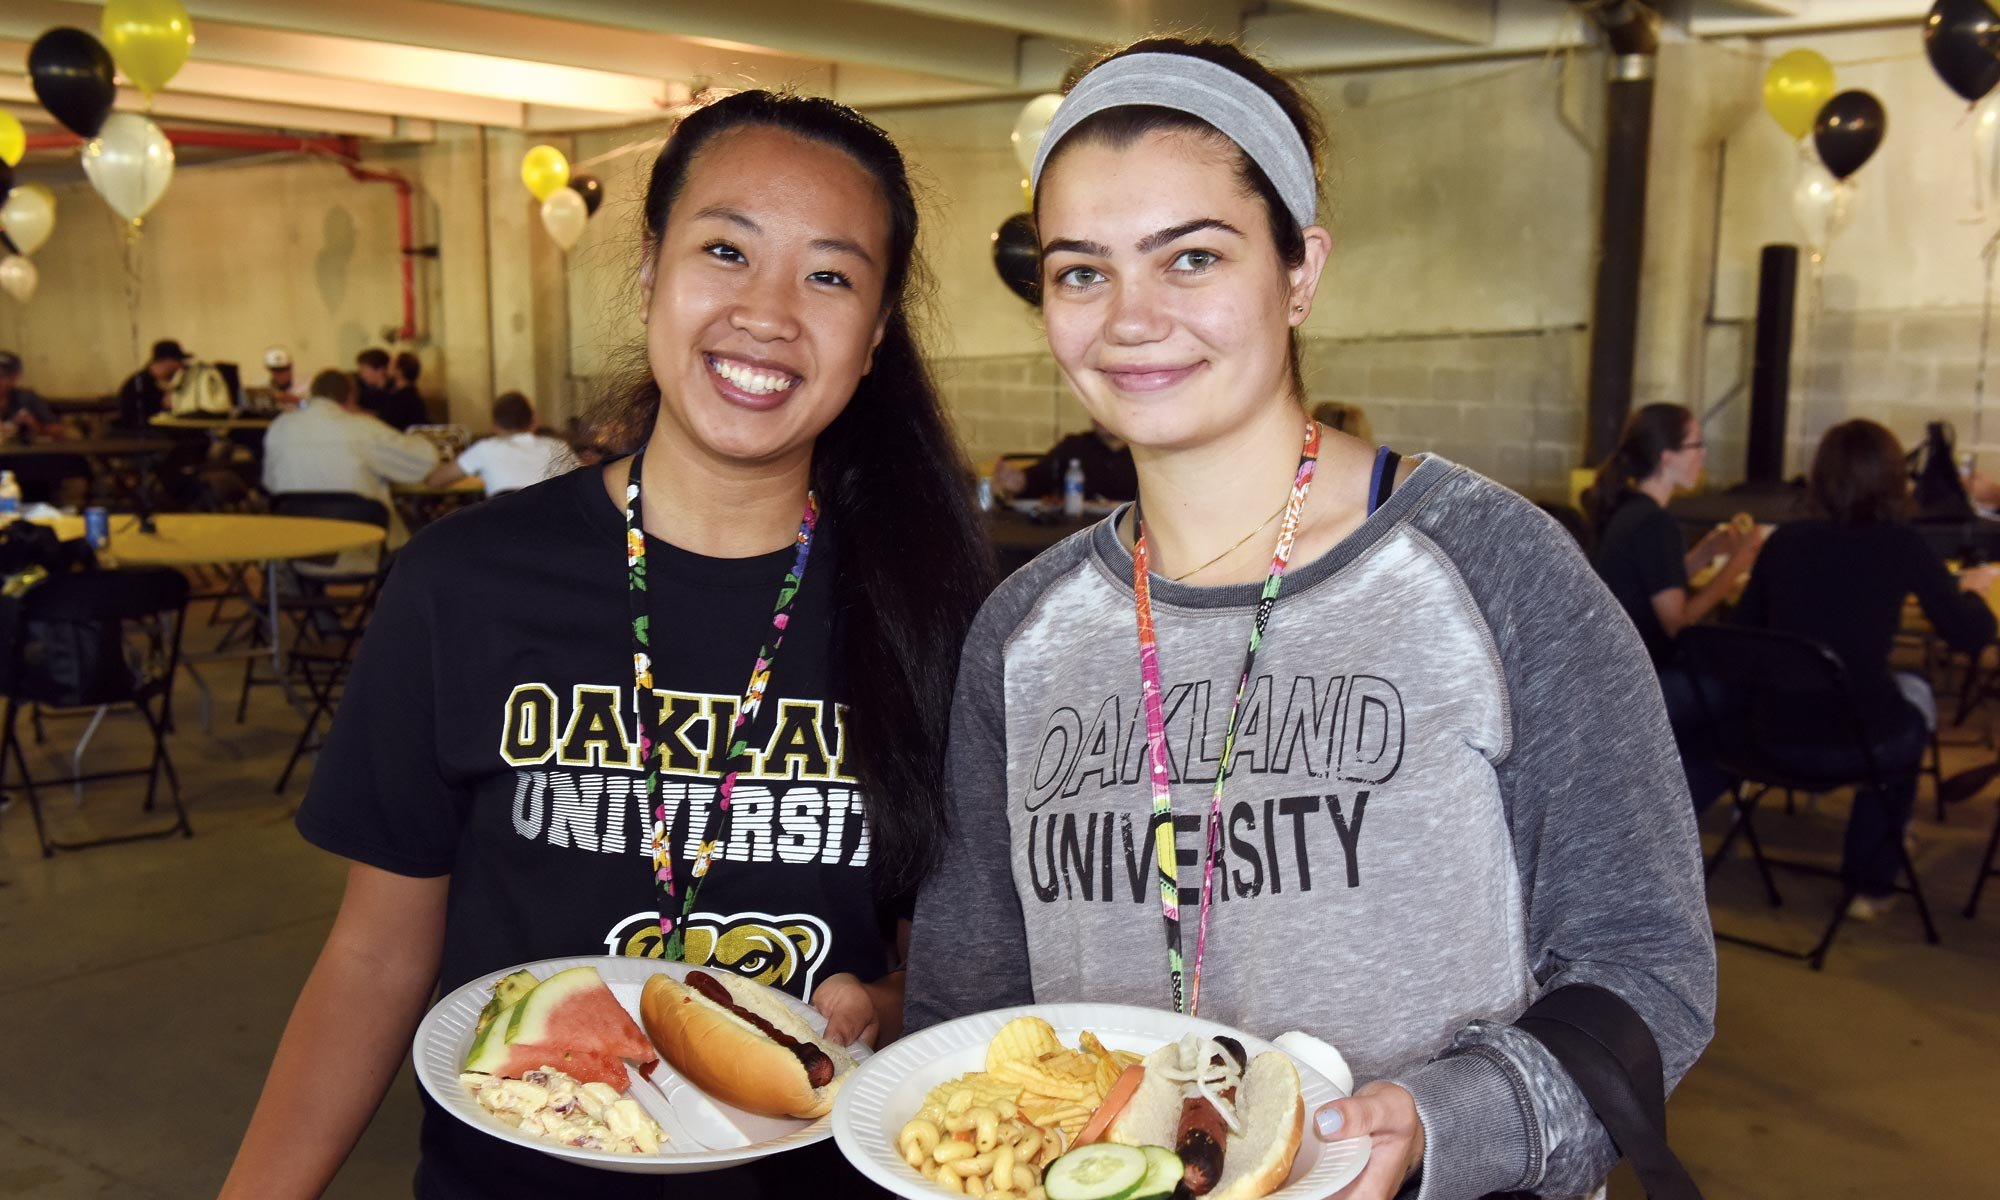 2 female students wearing Oakland University t-shits and posing for a photo while holding plates of food